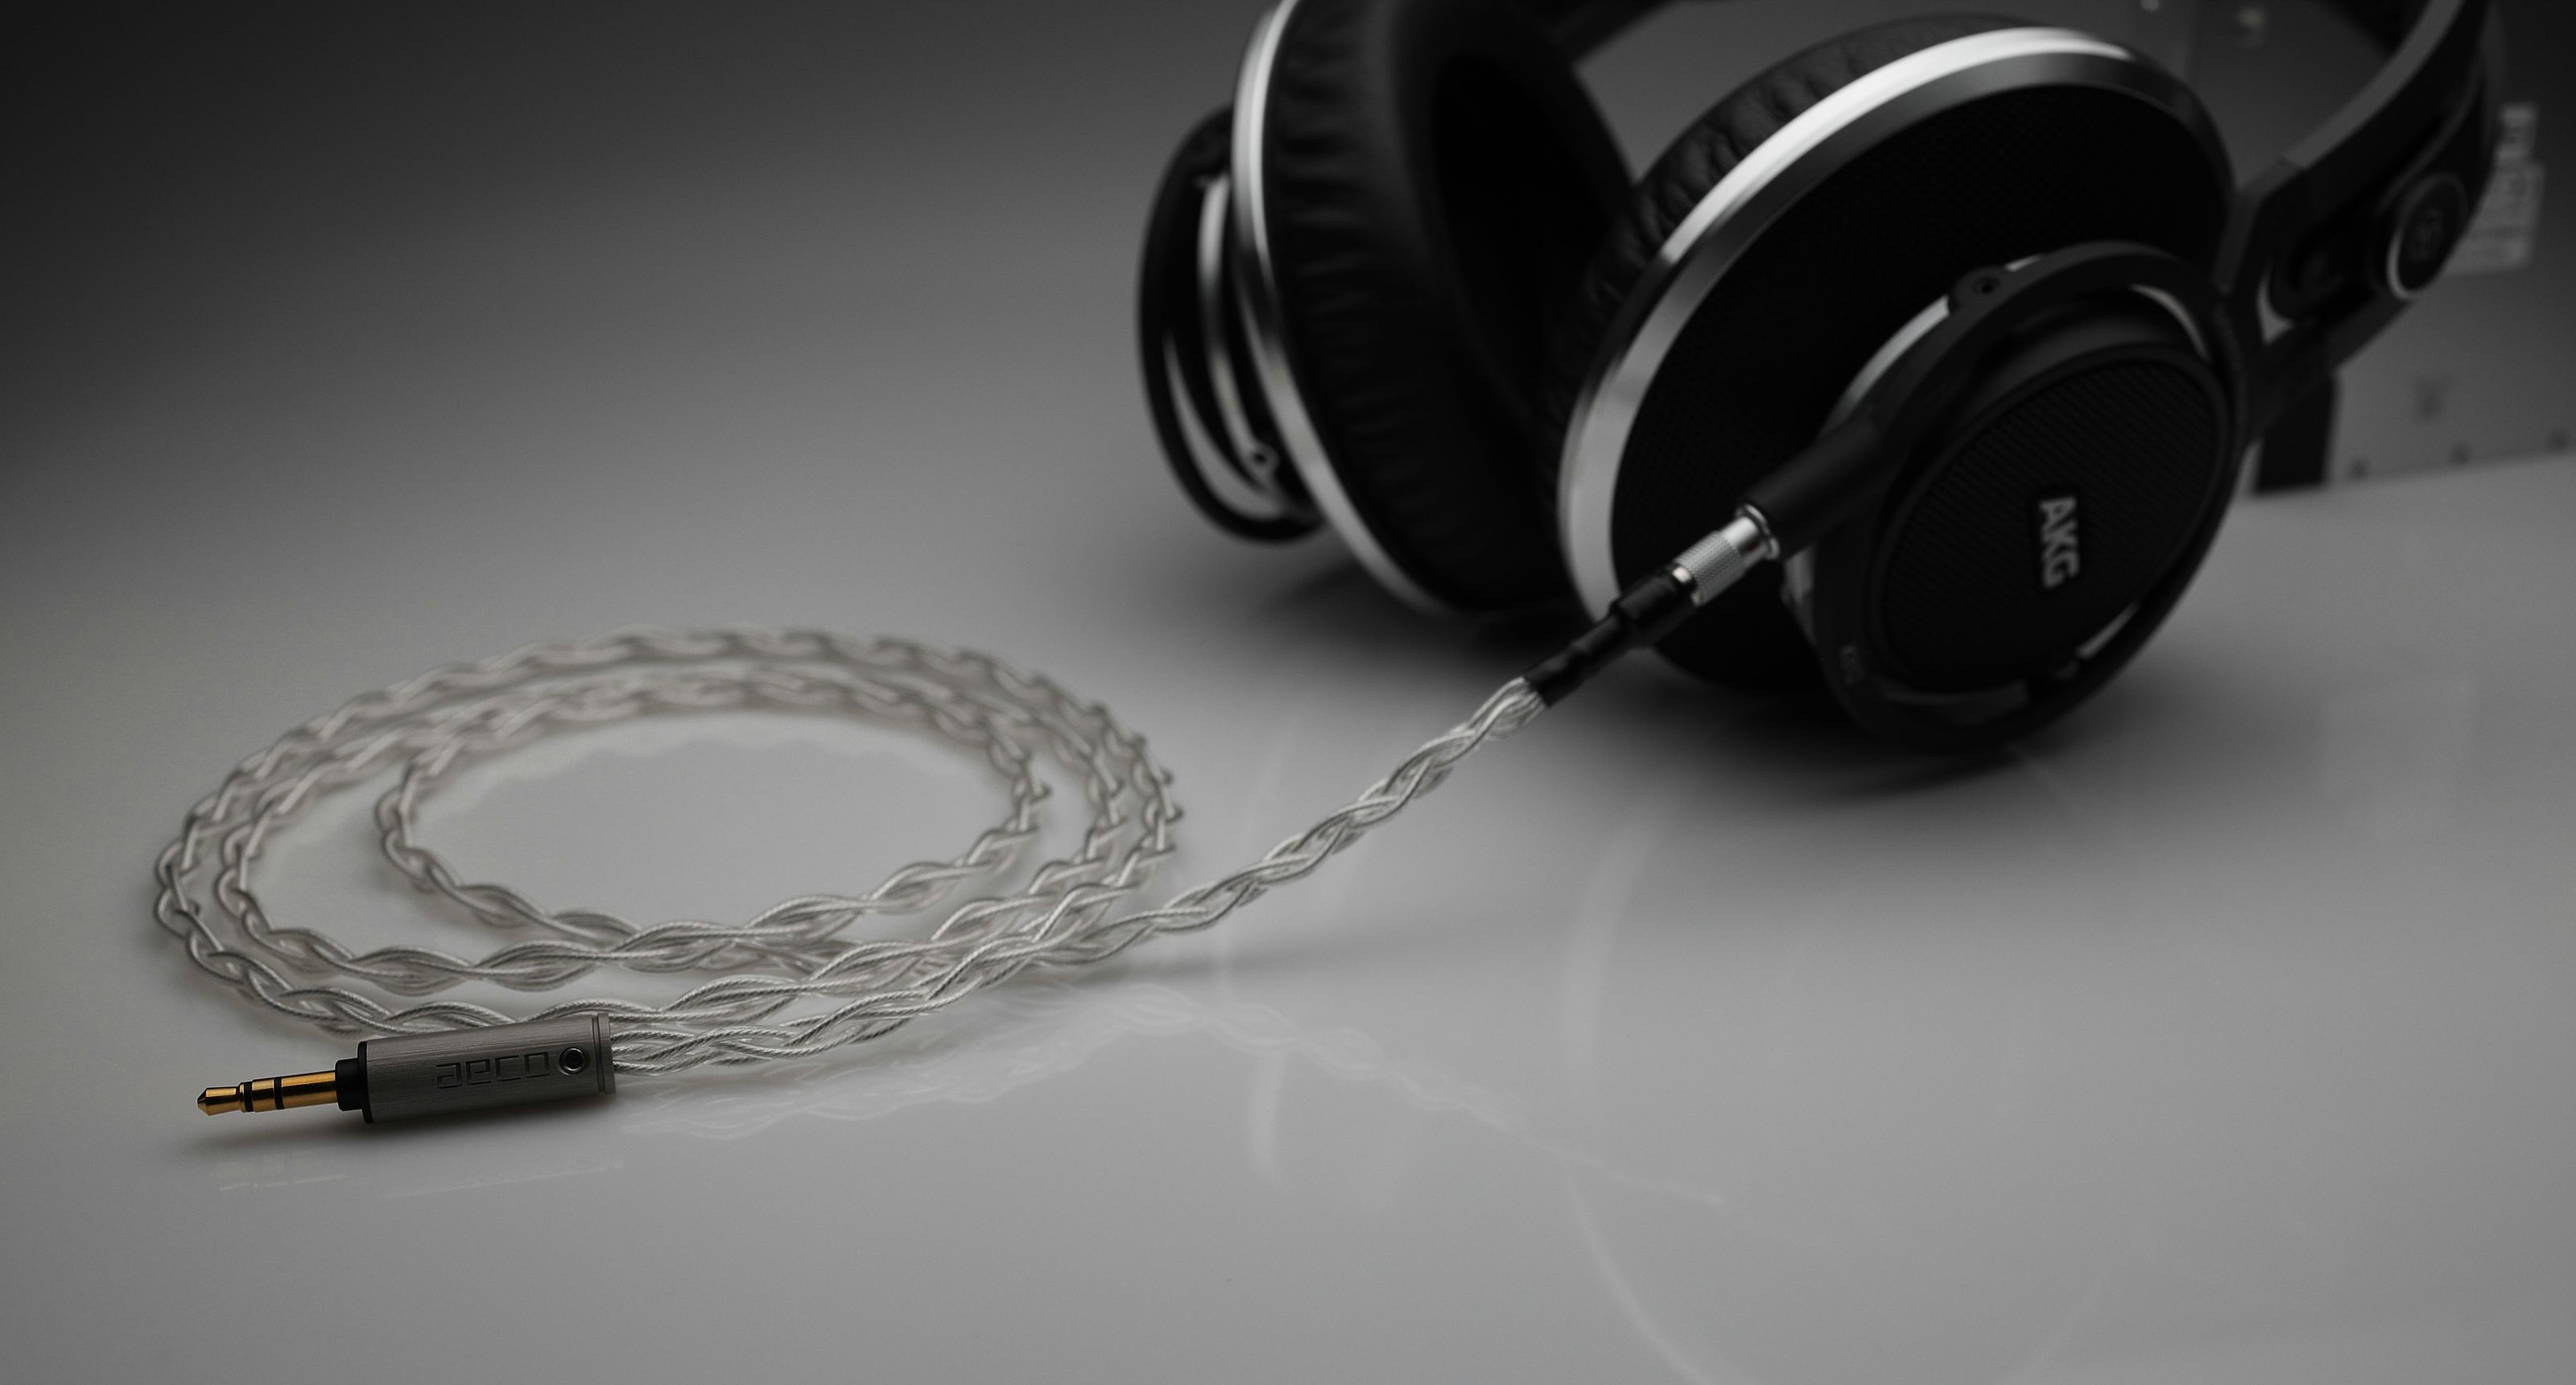 Master AKG 812 pure silver awg22 cable